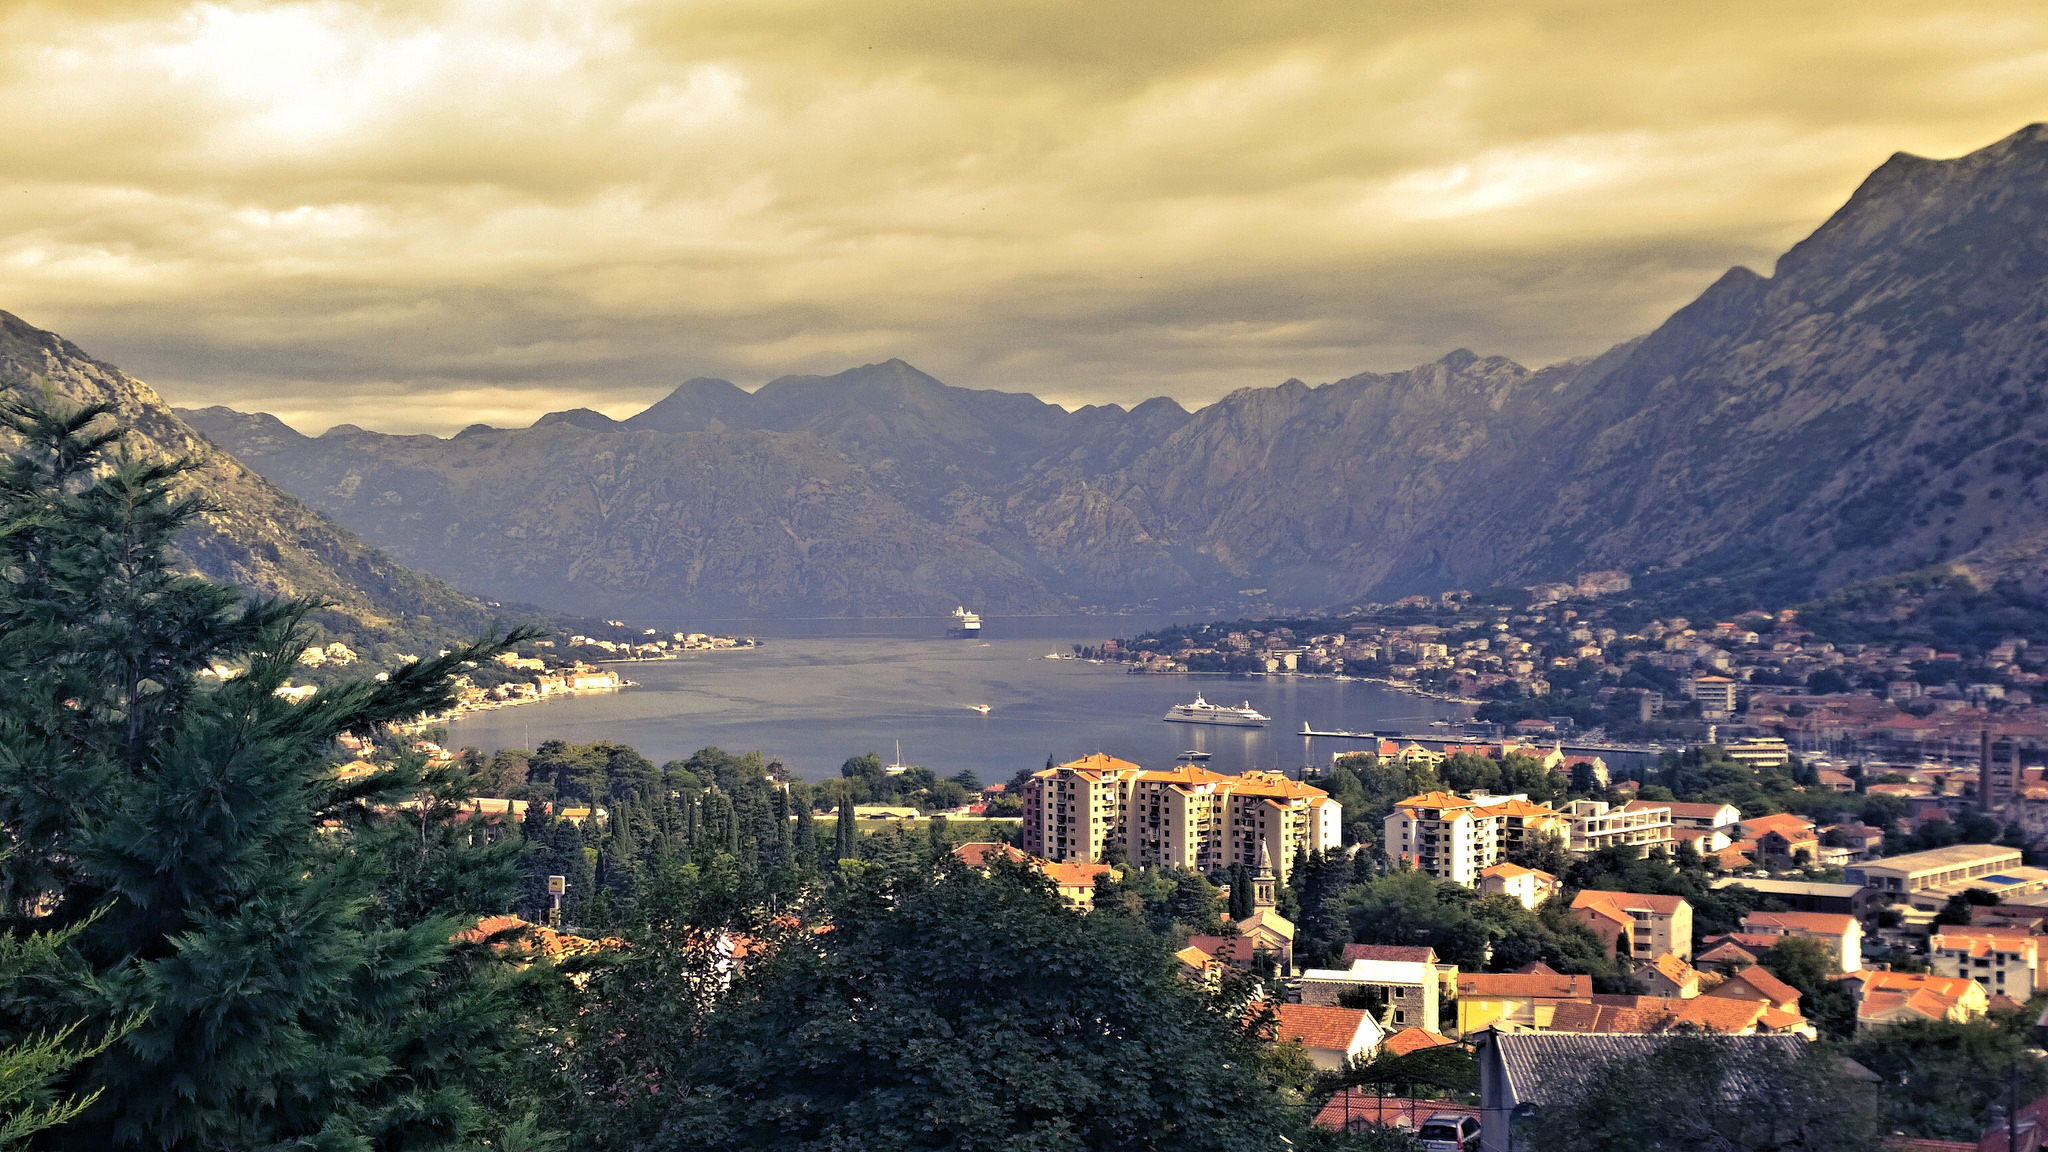 Kotor, a UNESCO World Heritage Site - Photo by SarahTz https://www.flickr.com/photos/120420083@N05/